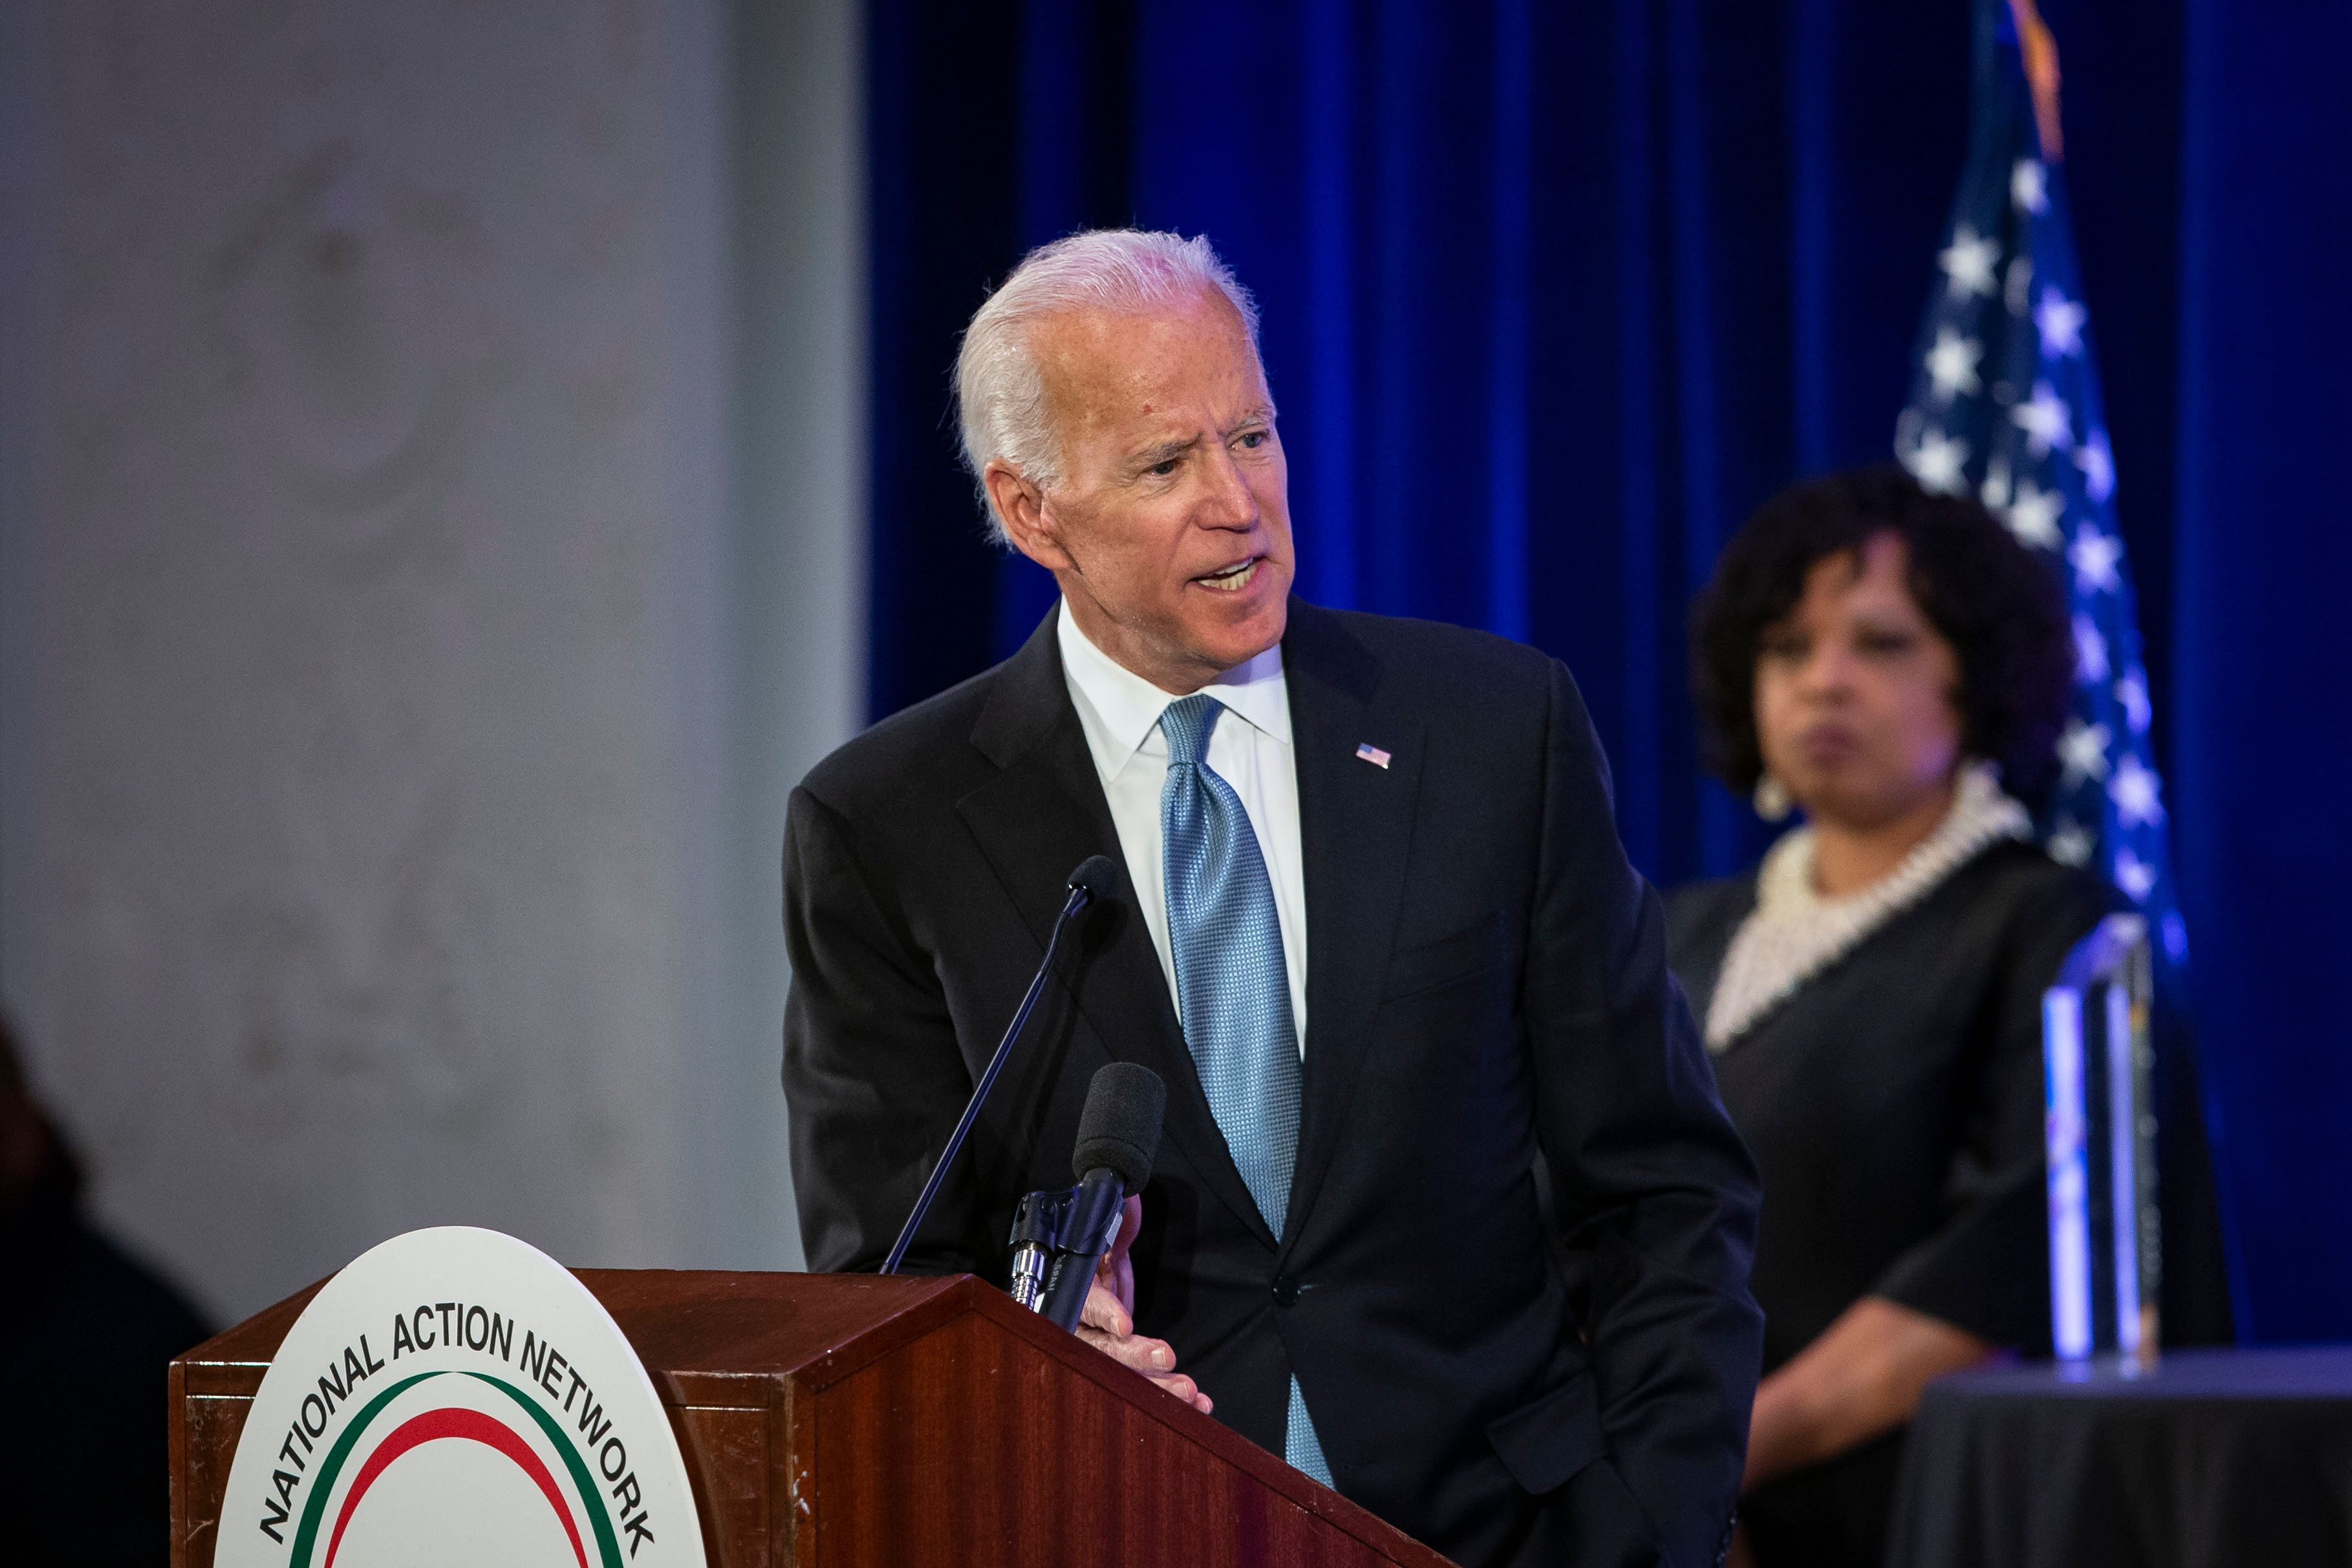 WASHINGTON, DC - JANUARY 21: Former Vice President Joe Biden speaks during the National Action Network Breakfast on January 21, 2019 in Washington, DC. Martin Luther King III was among the attendees. (Photo by Al Drago/Getty Images)